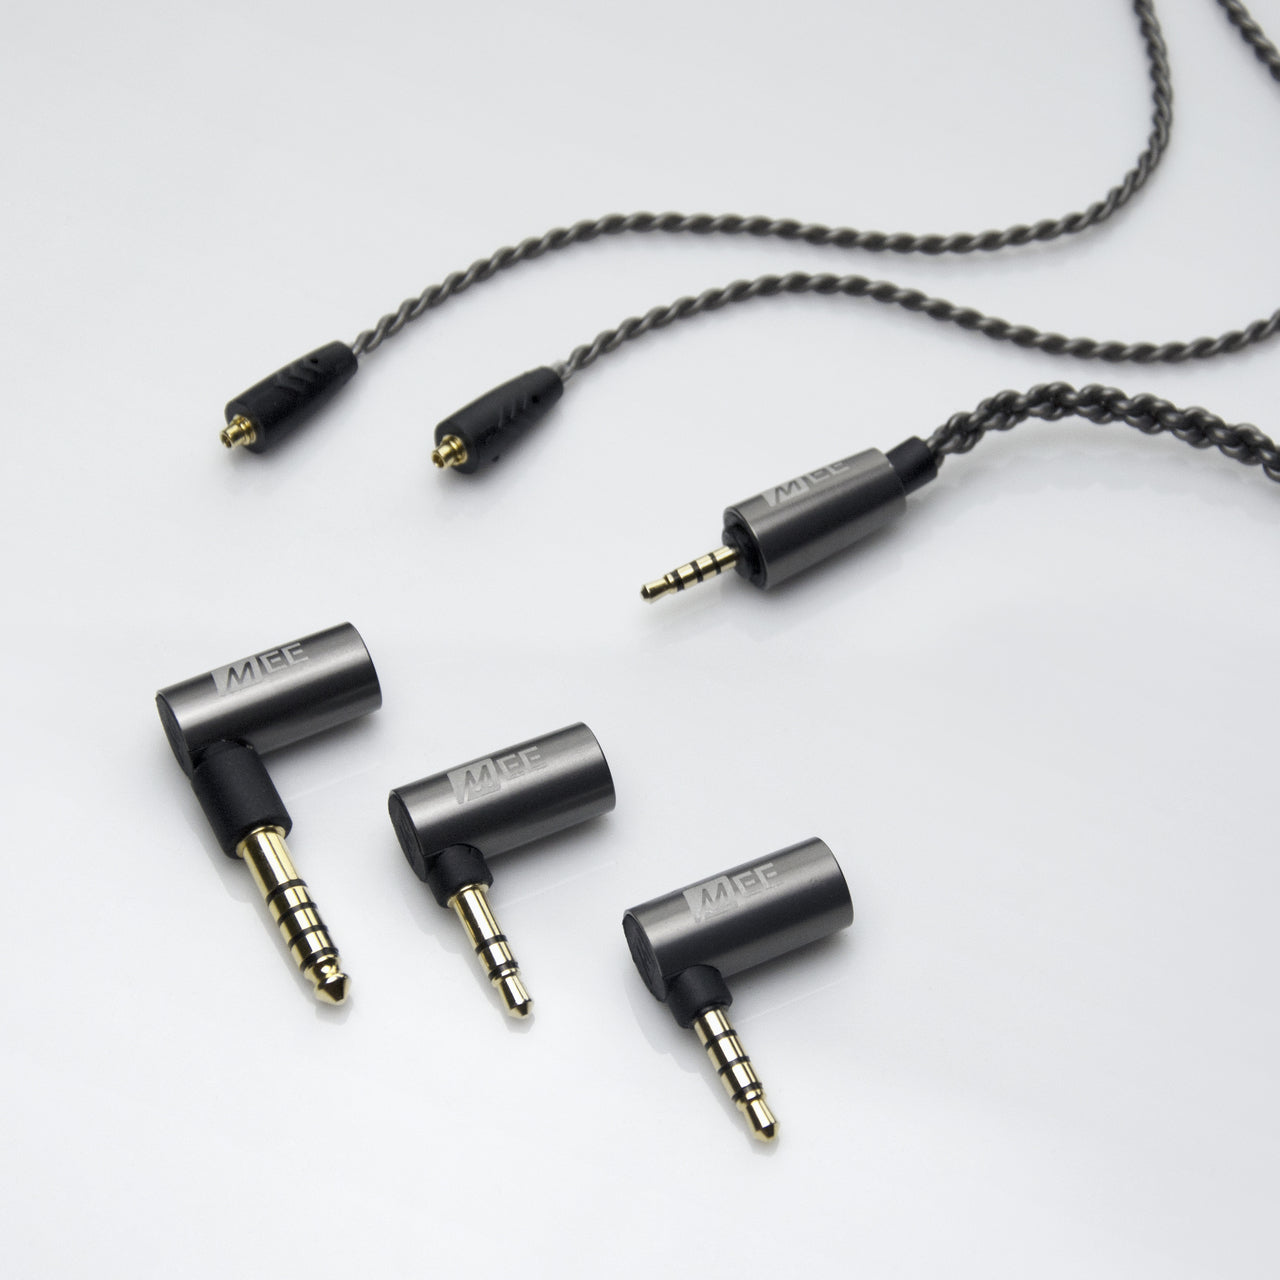 Mee Audio CMB-BAL-SET MMCX Cable - Jaben - The Little Headphone Store